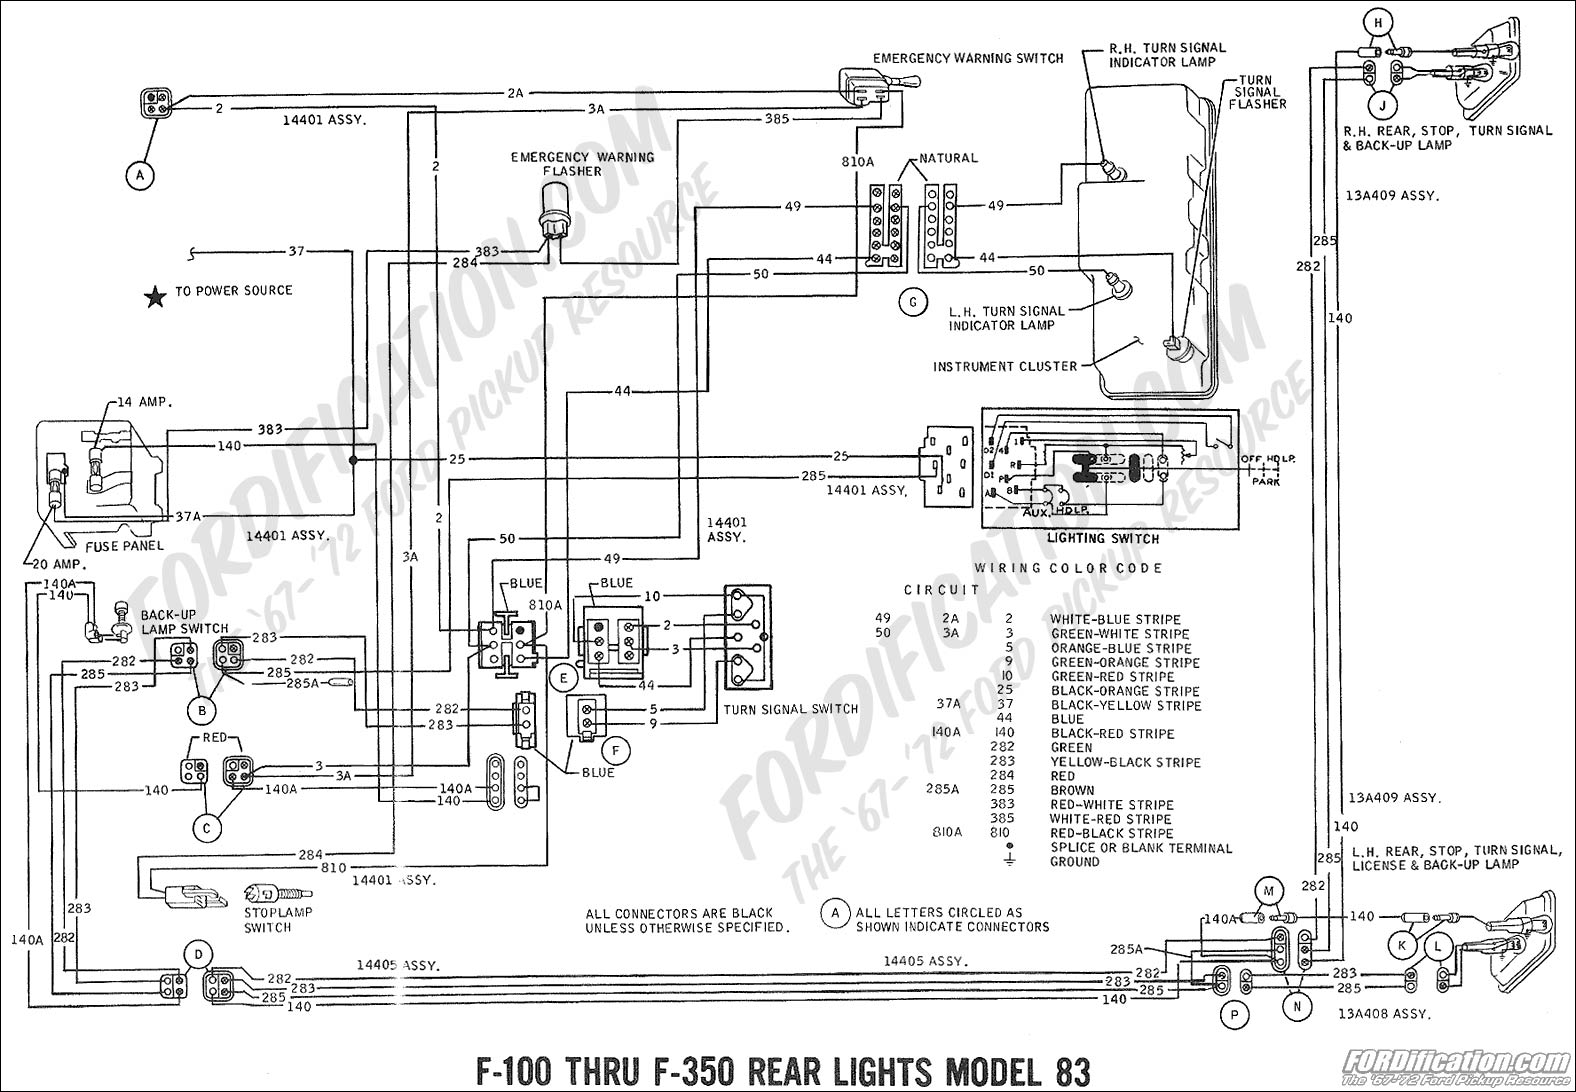 2002 Ford F350 Alternator Wire Diagram Search For Wiring Diagrams \u2022 2002  F350 Fuse Diagram 2002 F350 Alternator Diagram